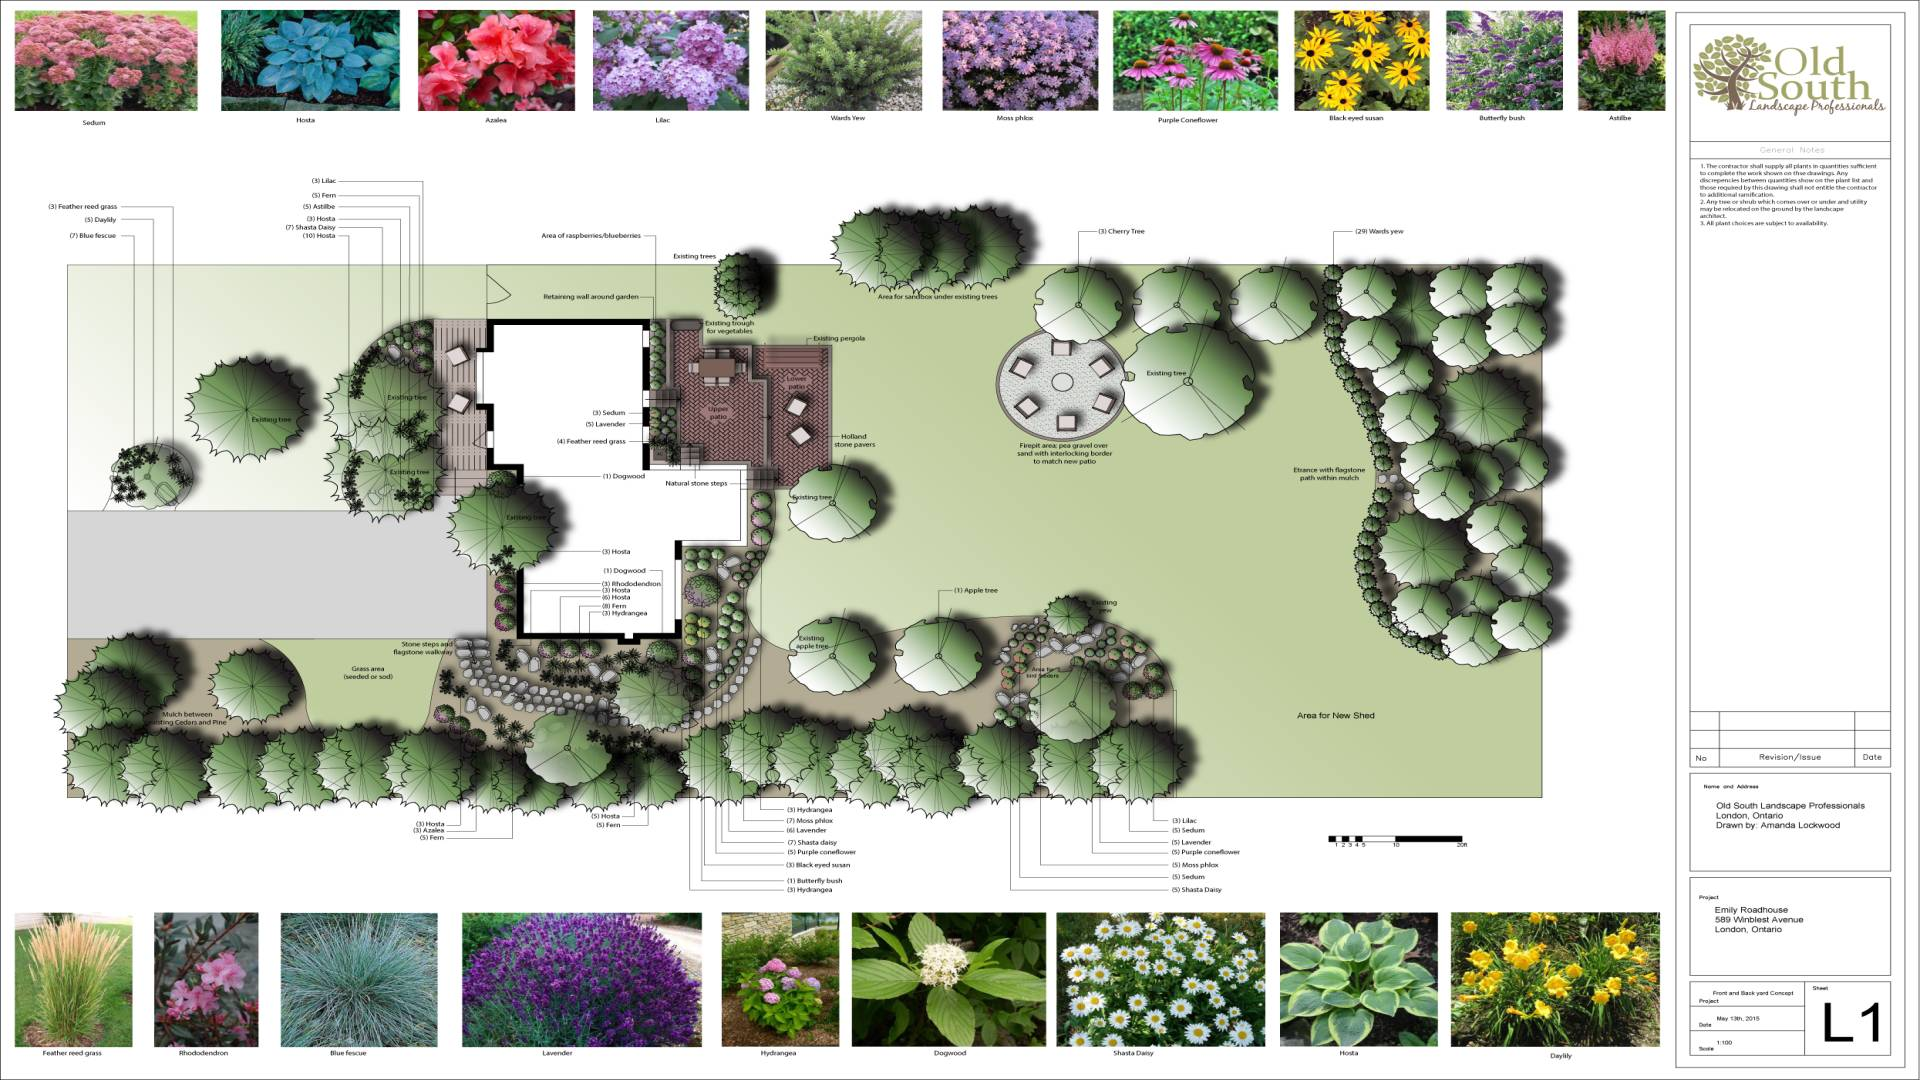 Sample landscape design. Detailed full-color drawing of the landscape design featuring meticulously labelled items with photos of plants in the plant legend bars above and below the full color drawing.